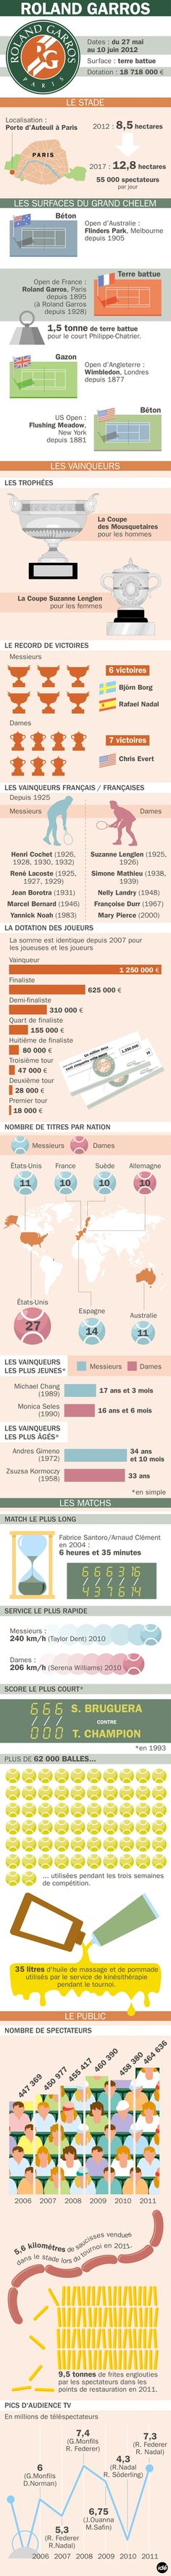 Infographie sur Roland Garros  French open infographics